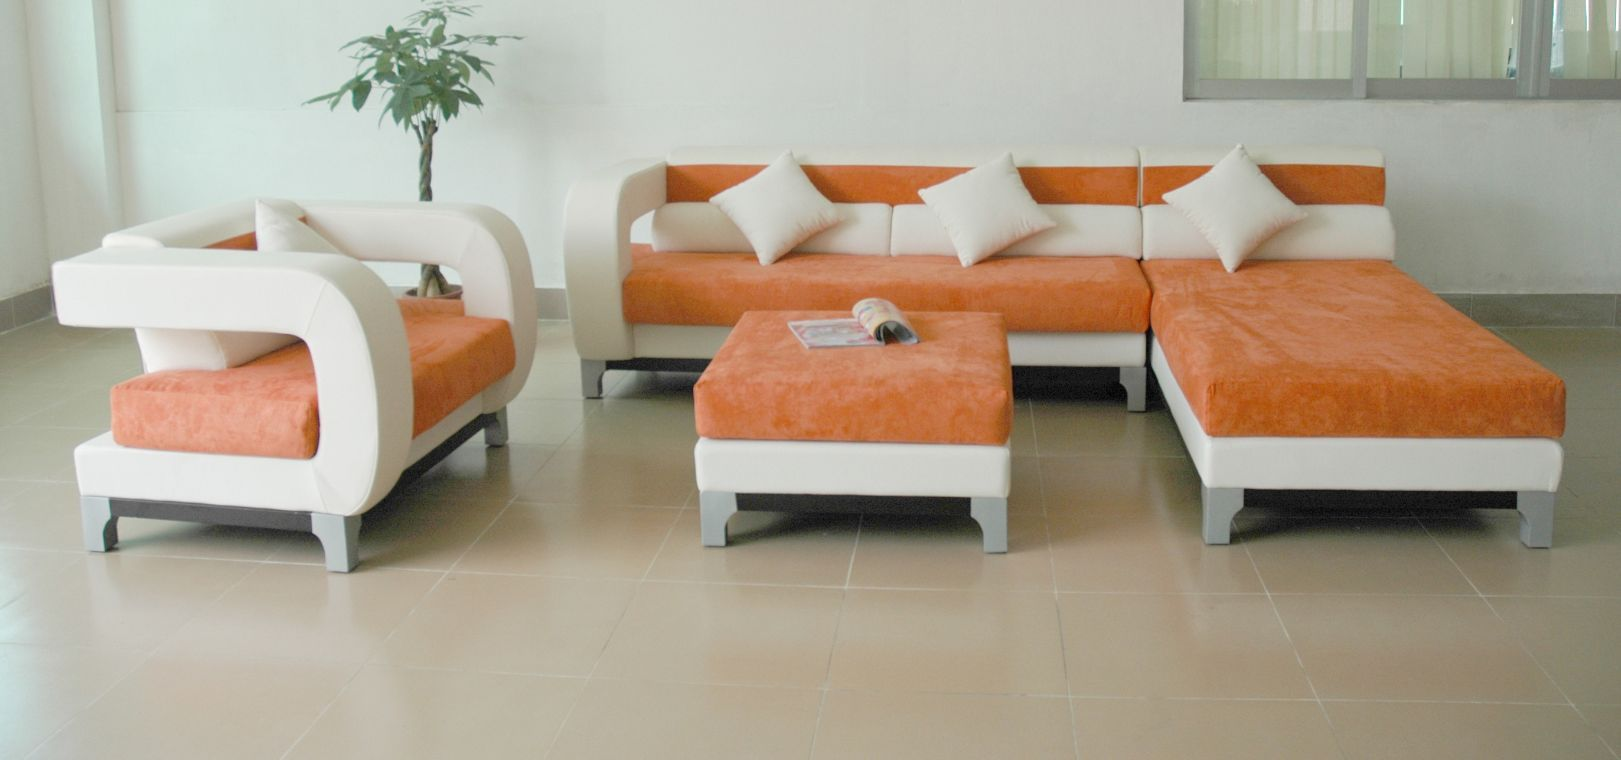 Avella modern leather sectional sofas - http://sectionalsofasale.net/